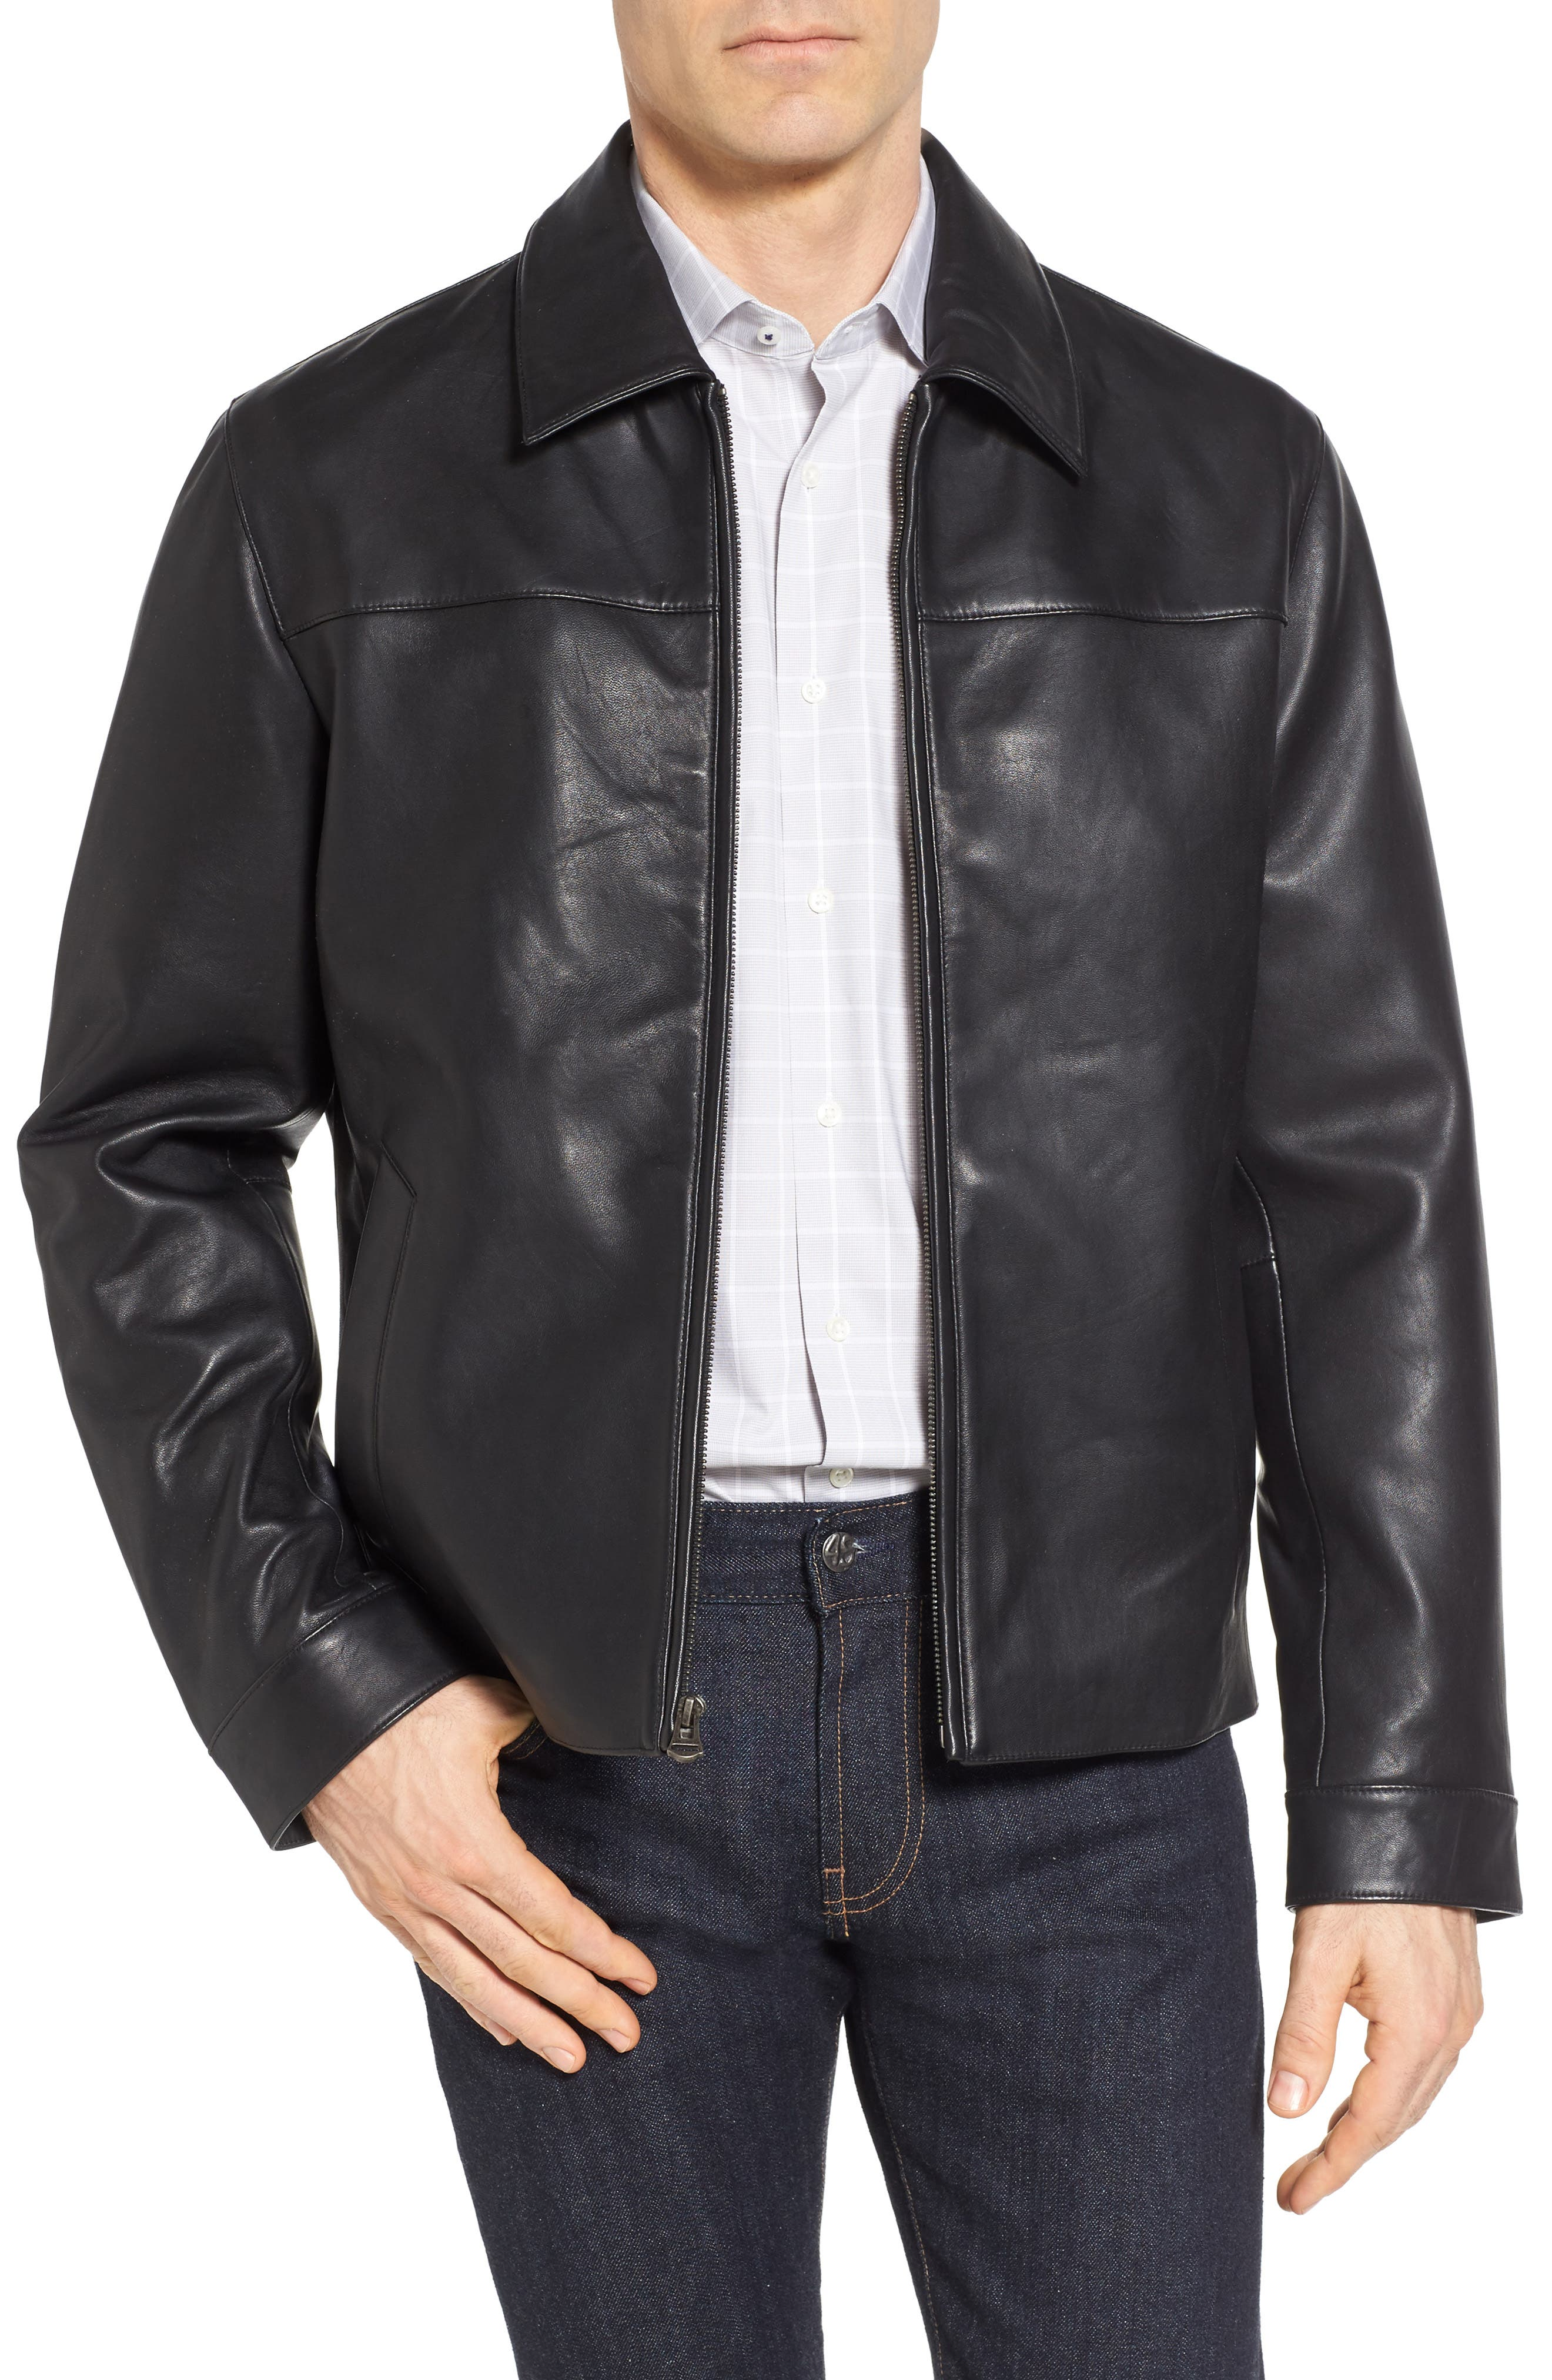 Regular Fit Leather Jacket,                             Main thumbnail 1, color,                             BLACK